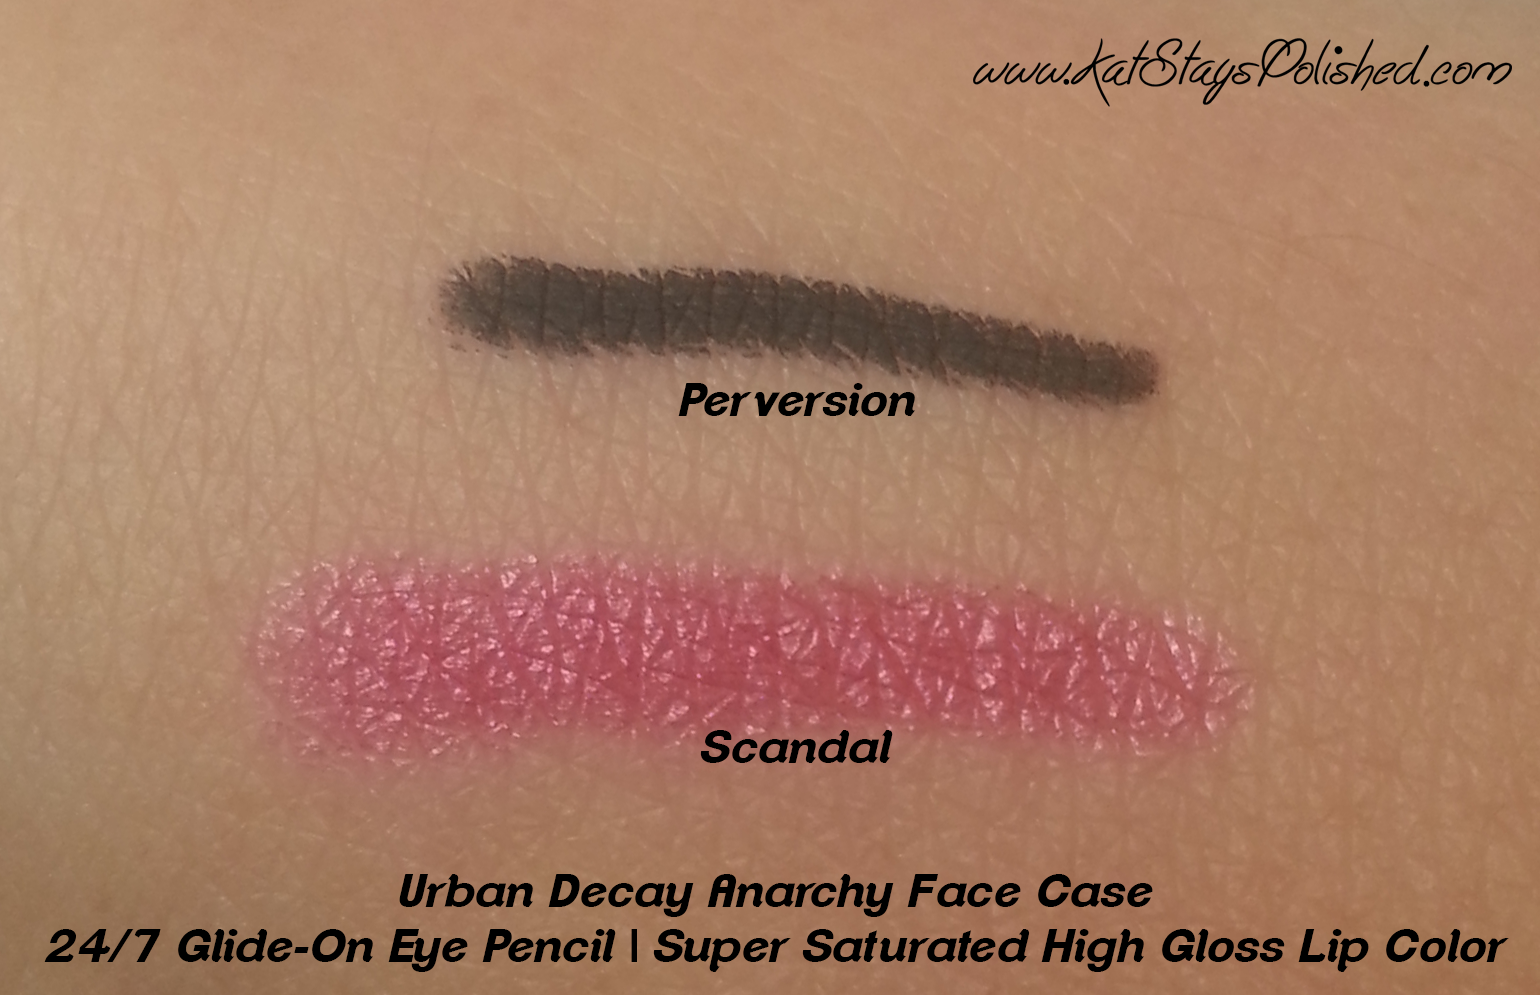 Urban Decay Anarchy Face Case - Eyeliner and Lip Swatches